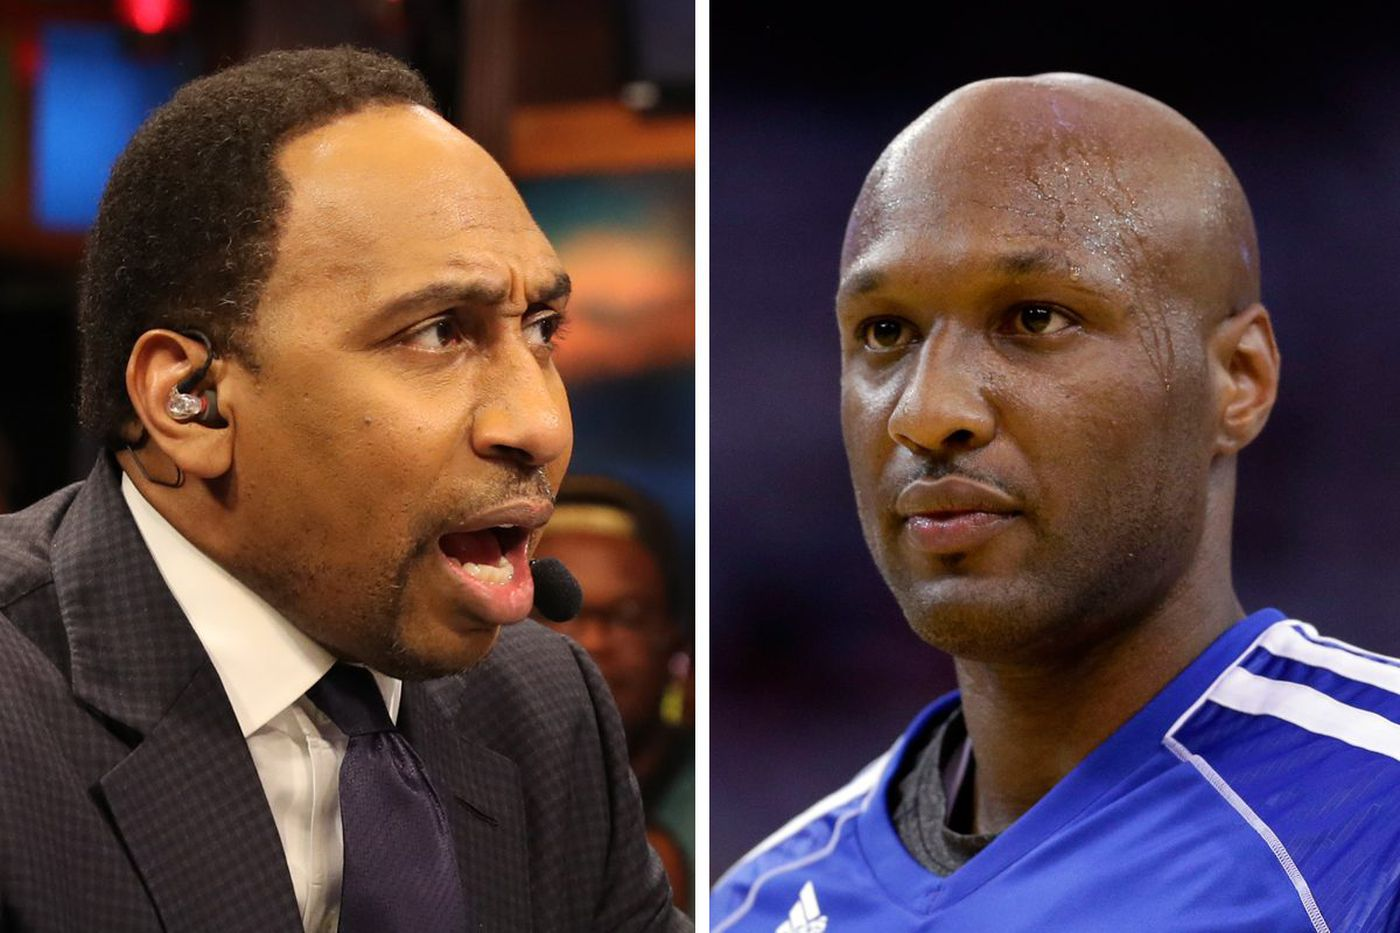 Stephen A. Smith pulls back after ranting that Lamar Odom 'was on crack'